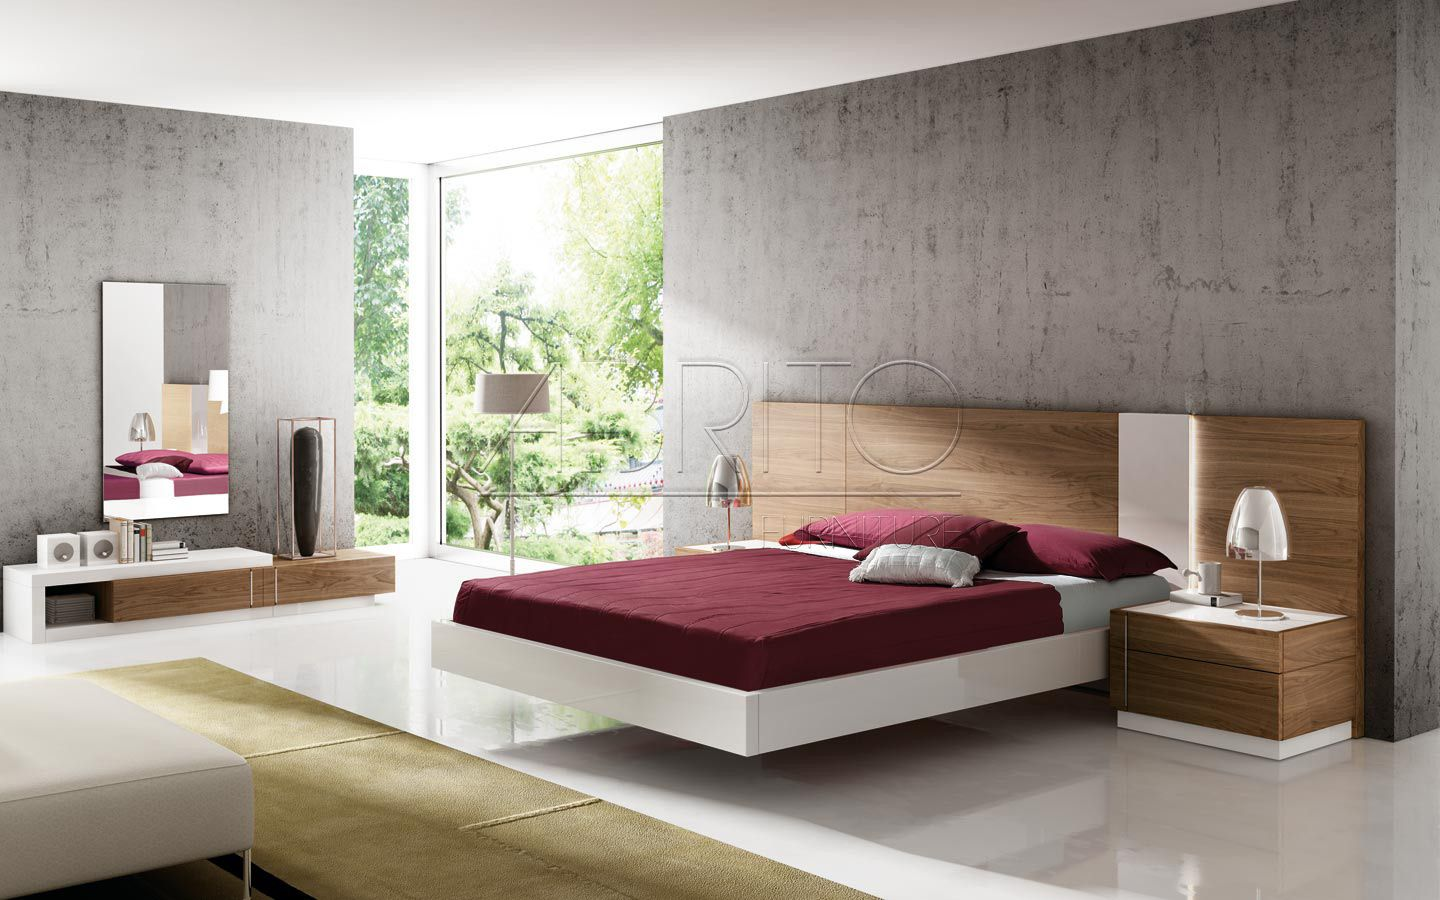 Lacquered made in spain wood modern platform bed with tiles milwaukee - Find This Pin And More On Beds